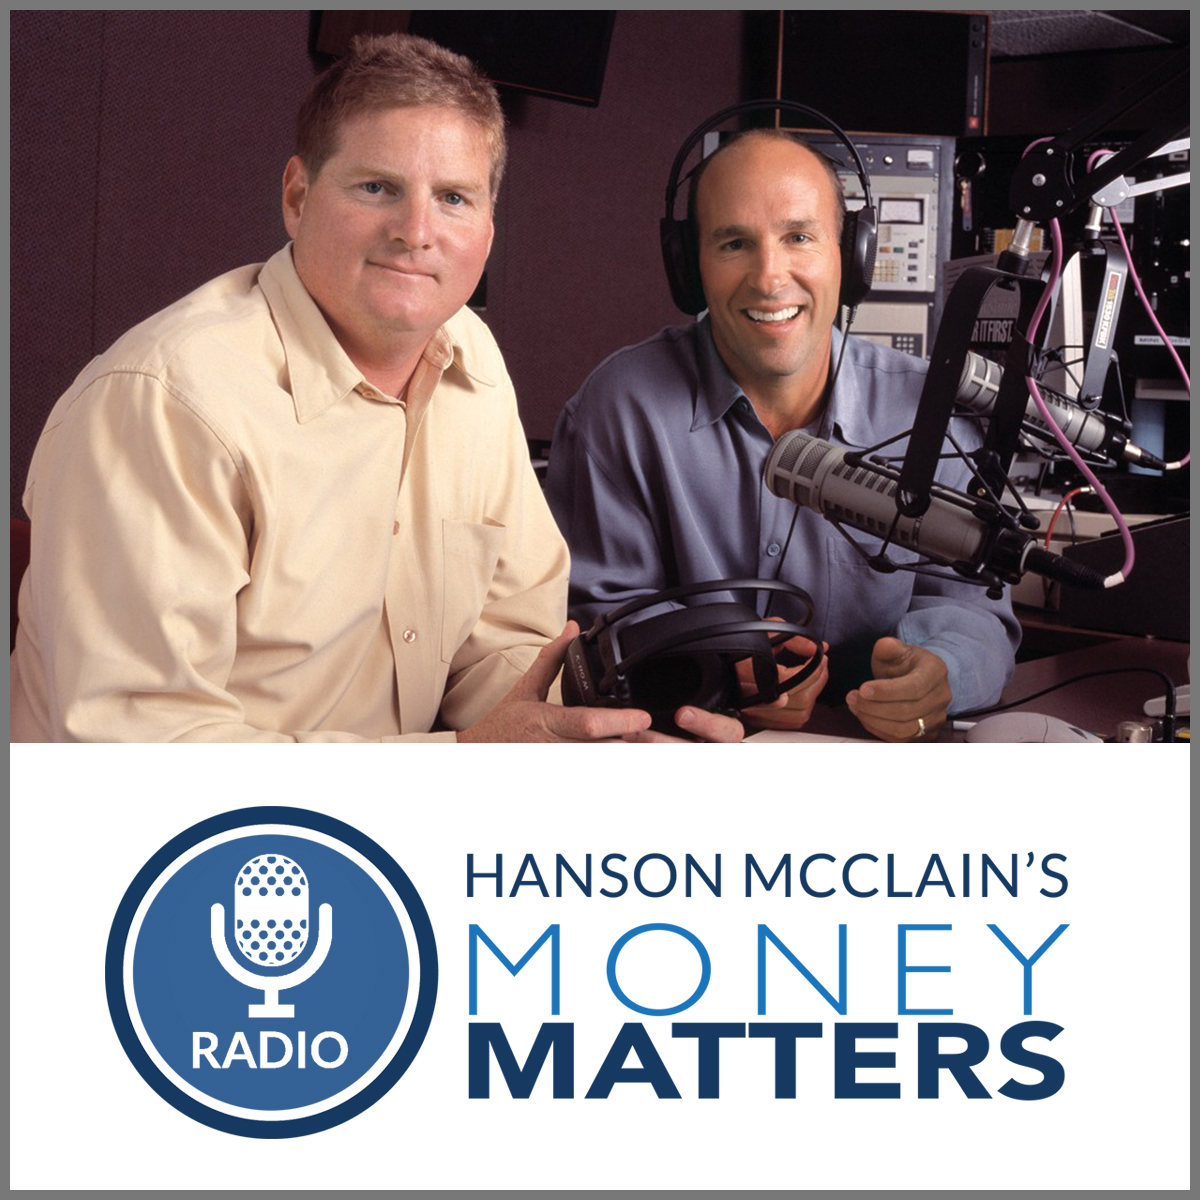 Hanson McClain's Money Matters